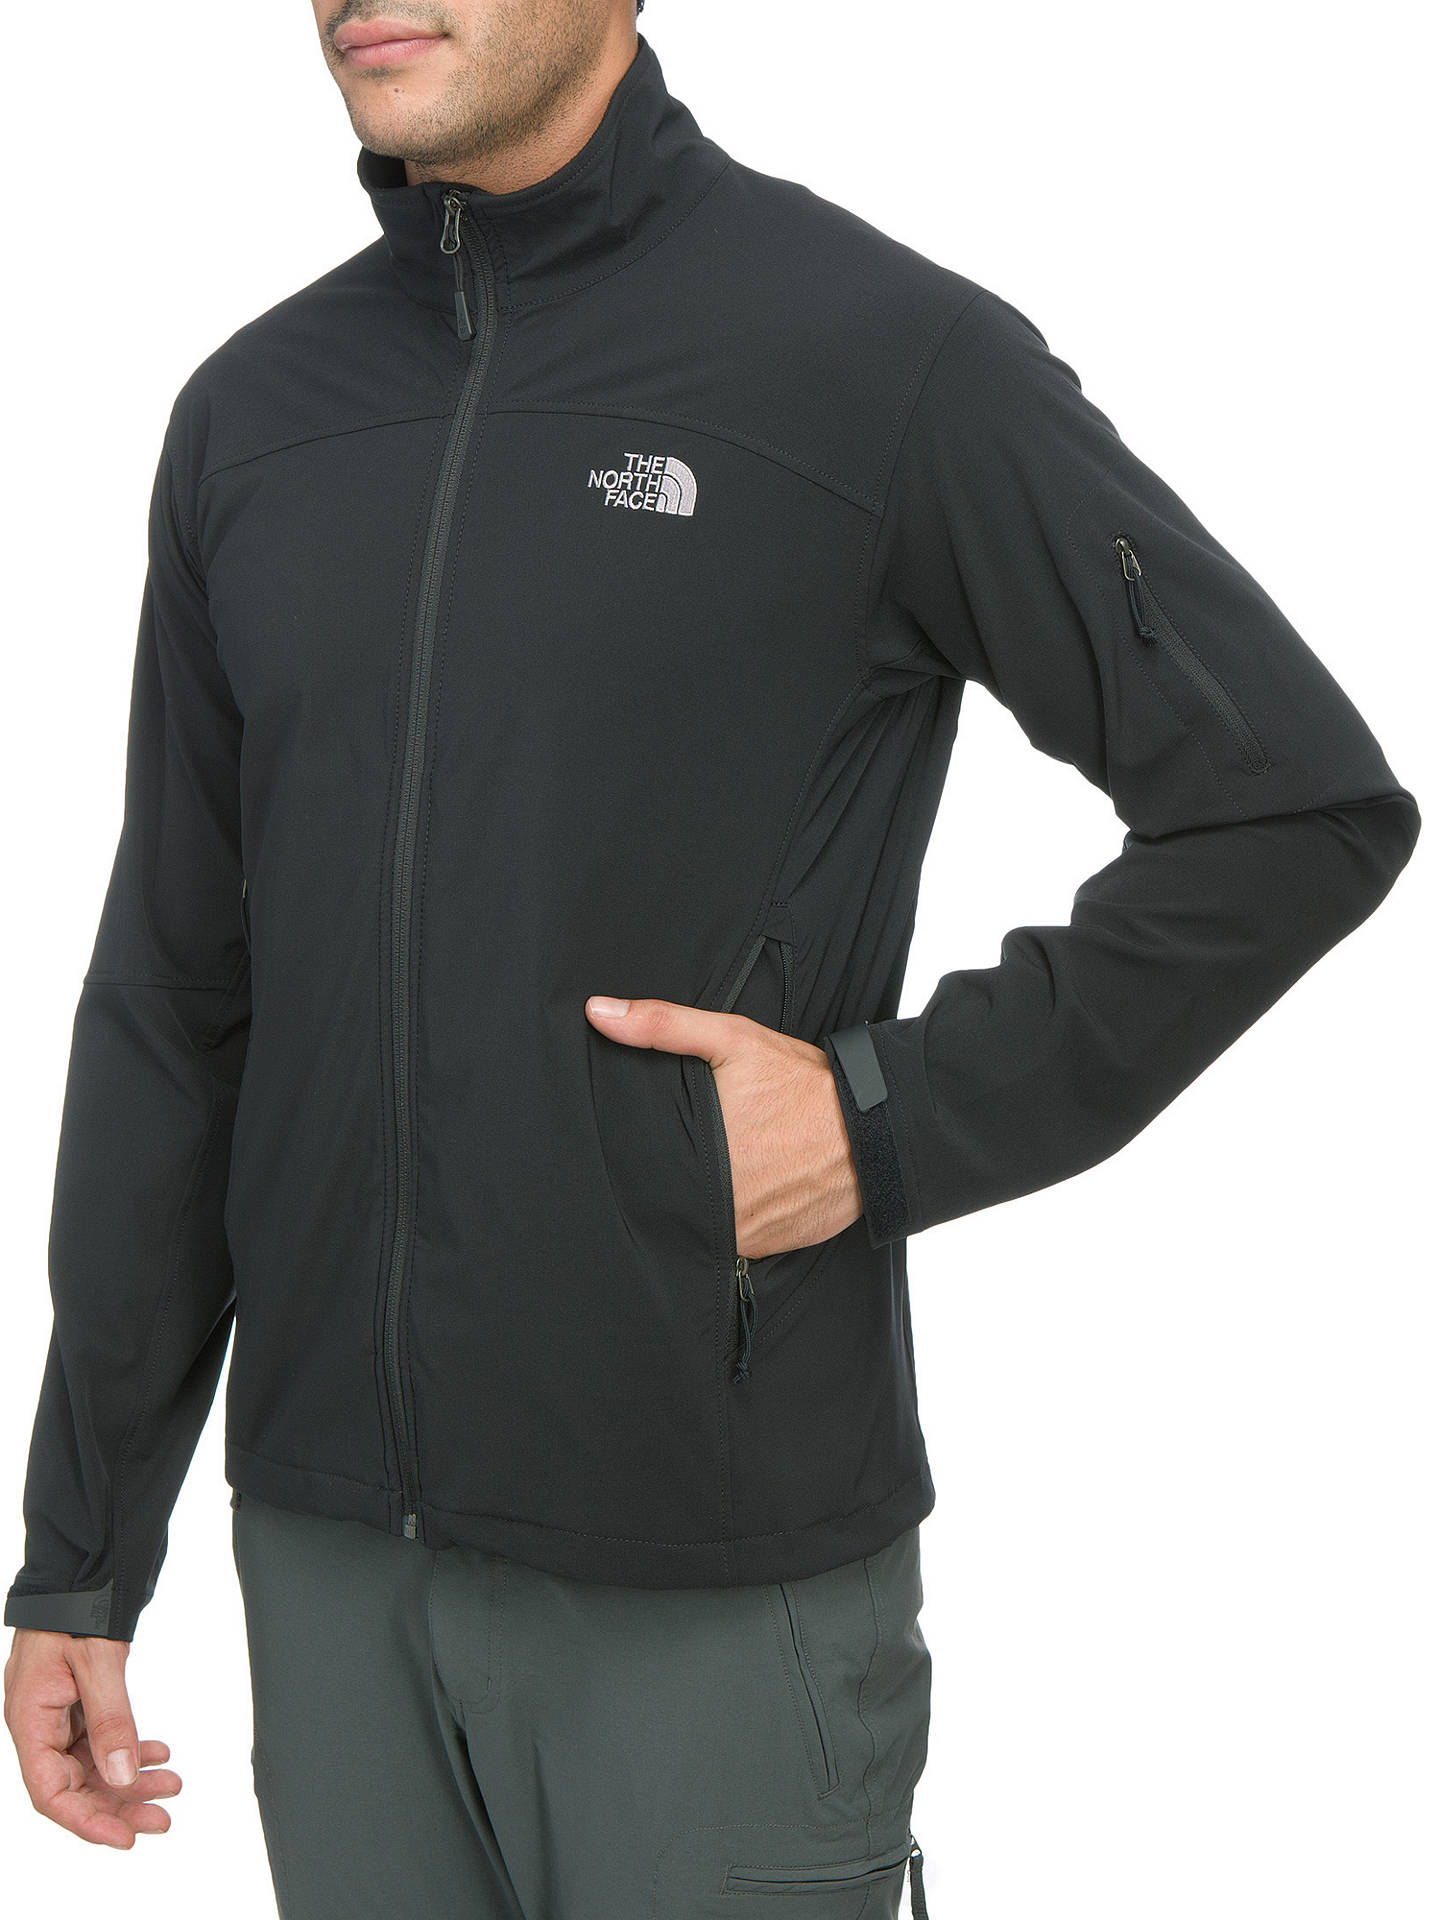 7b8265836 The North Face Soft Shell Ceresio Men's Jacket, Black at John Lewis ...